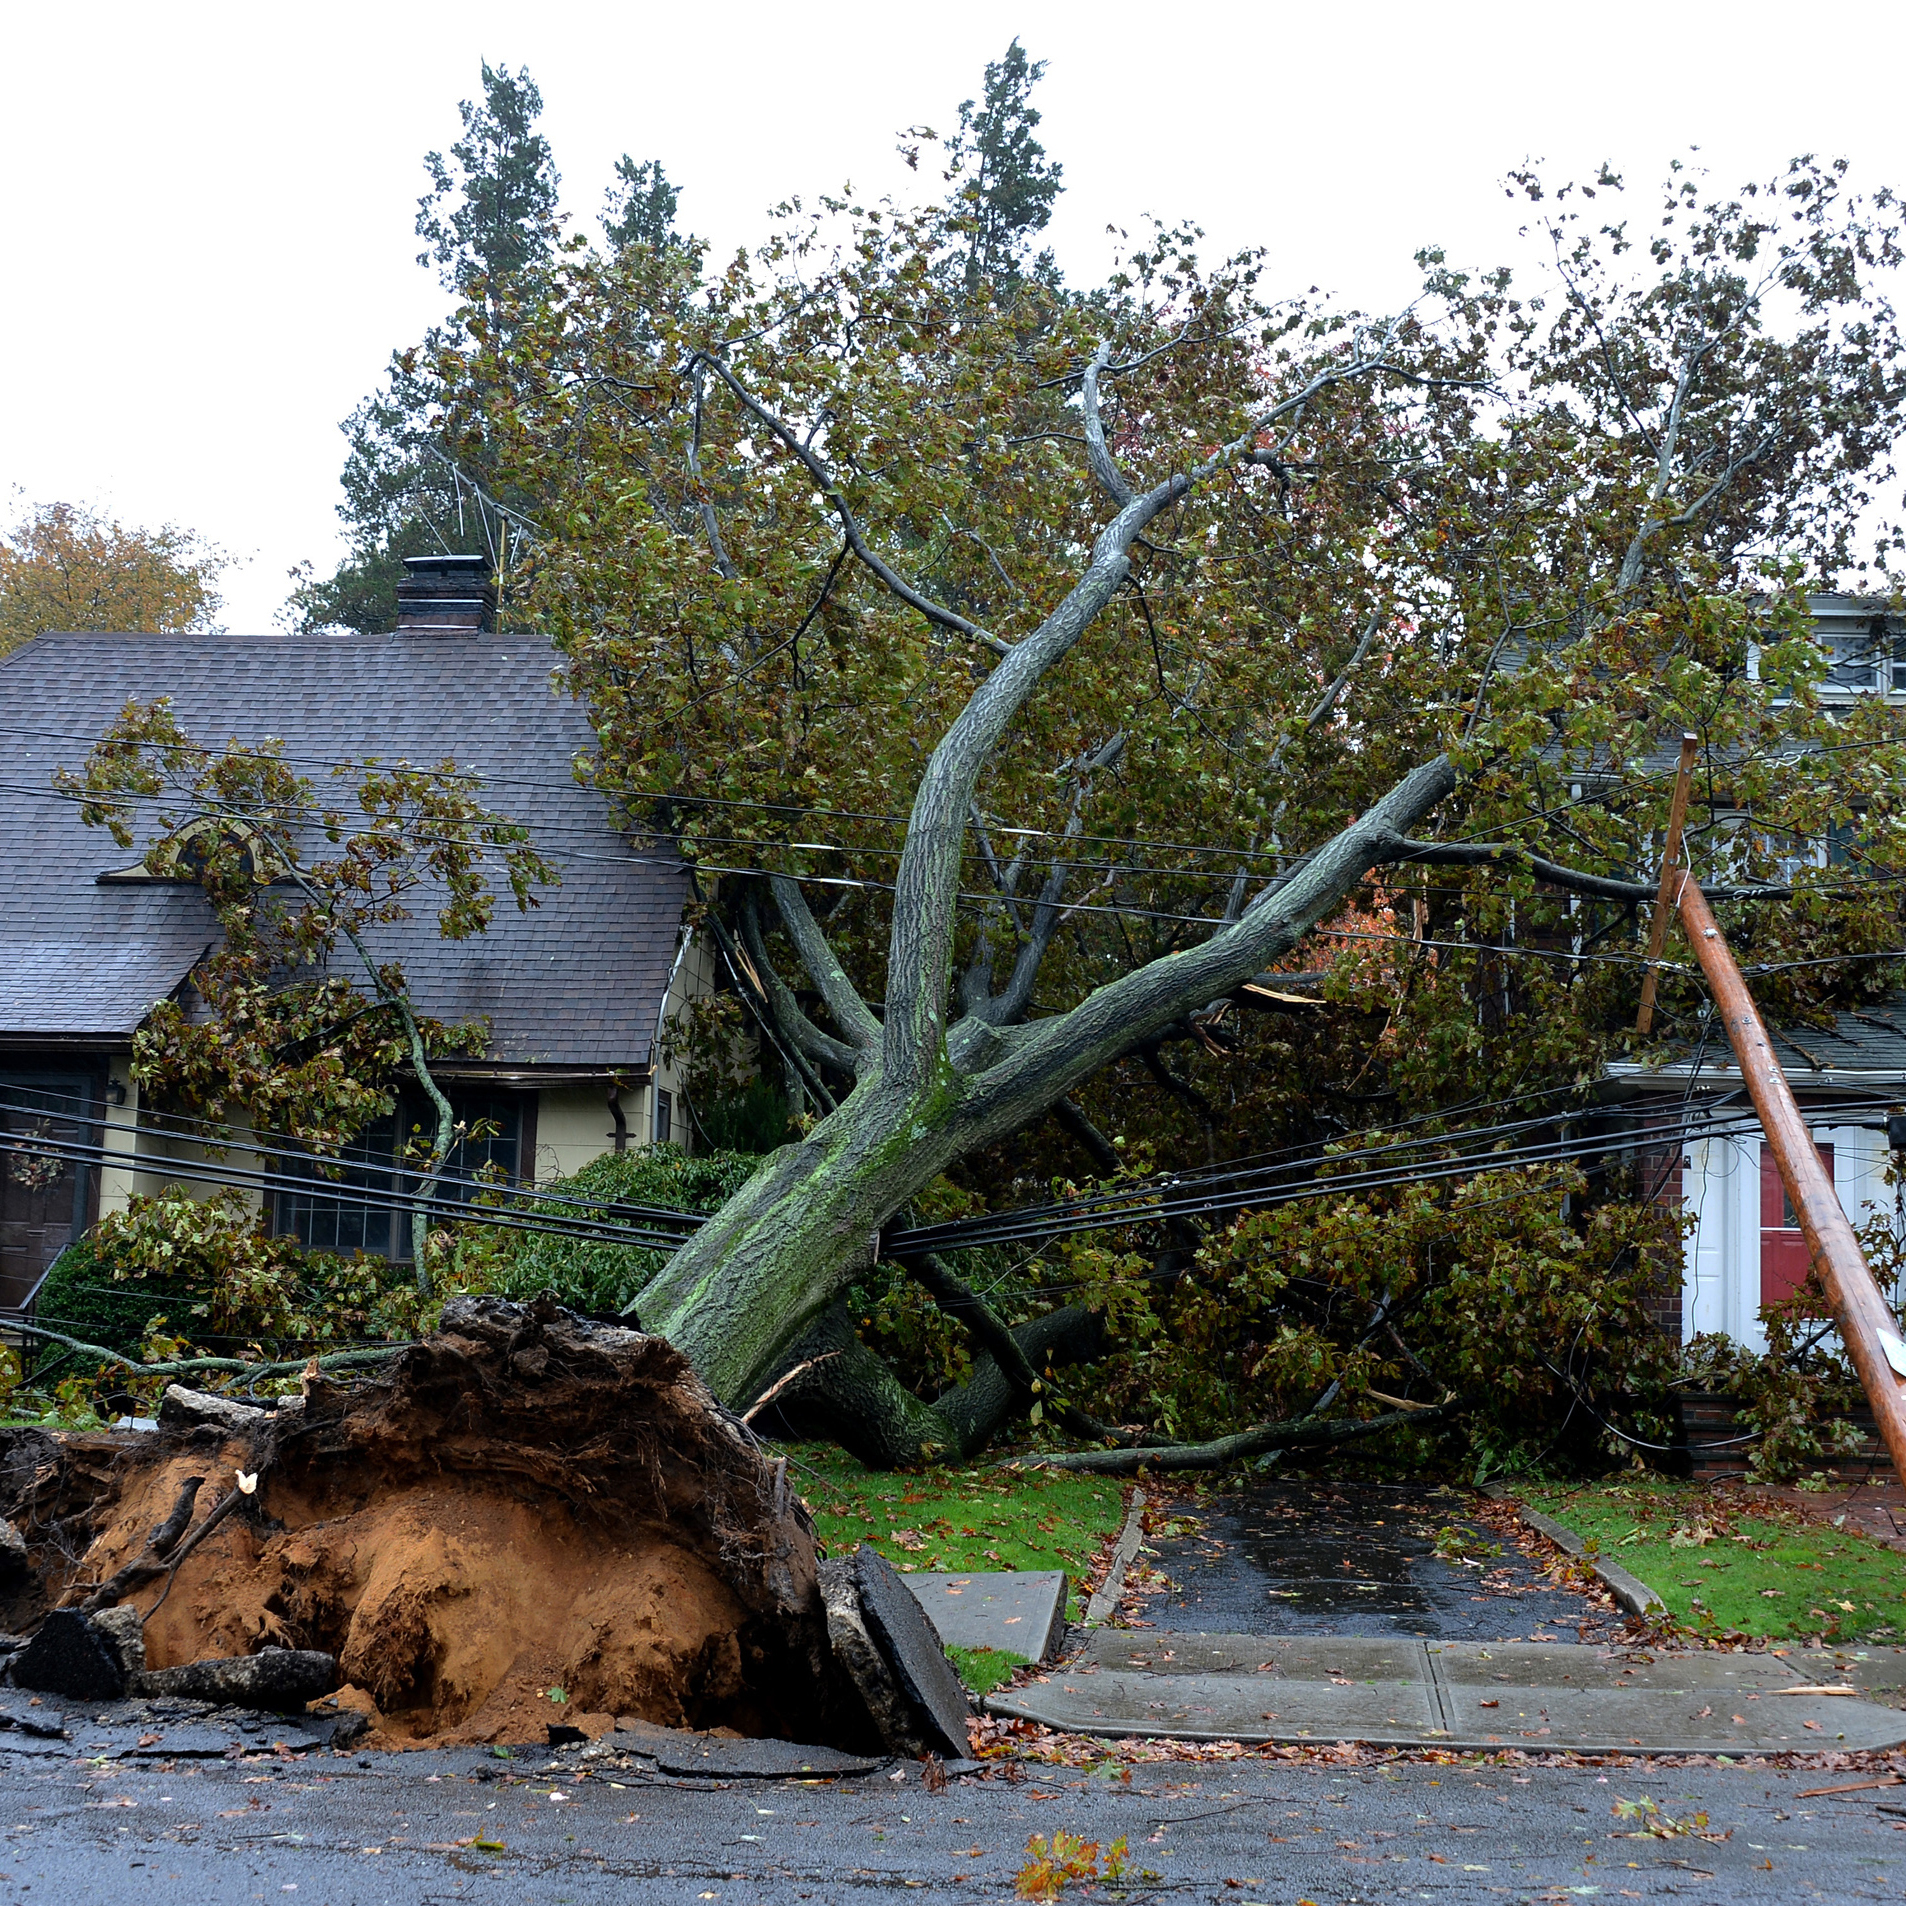 A fallen tree and power line lie over homes in Garden City, N.Y. Hurricane Sandy still has 90 mph sustained winds with higher gusts.